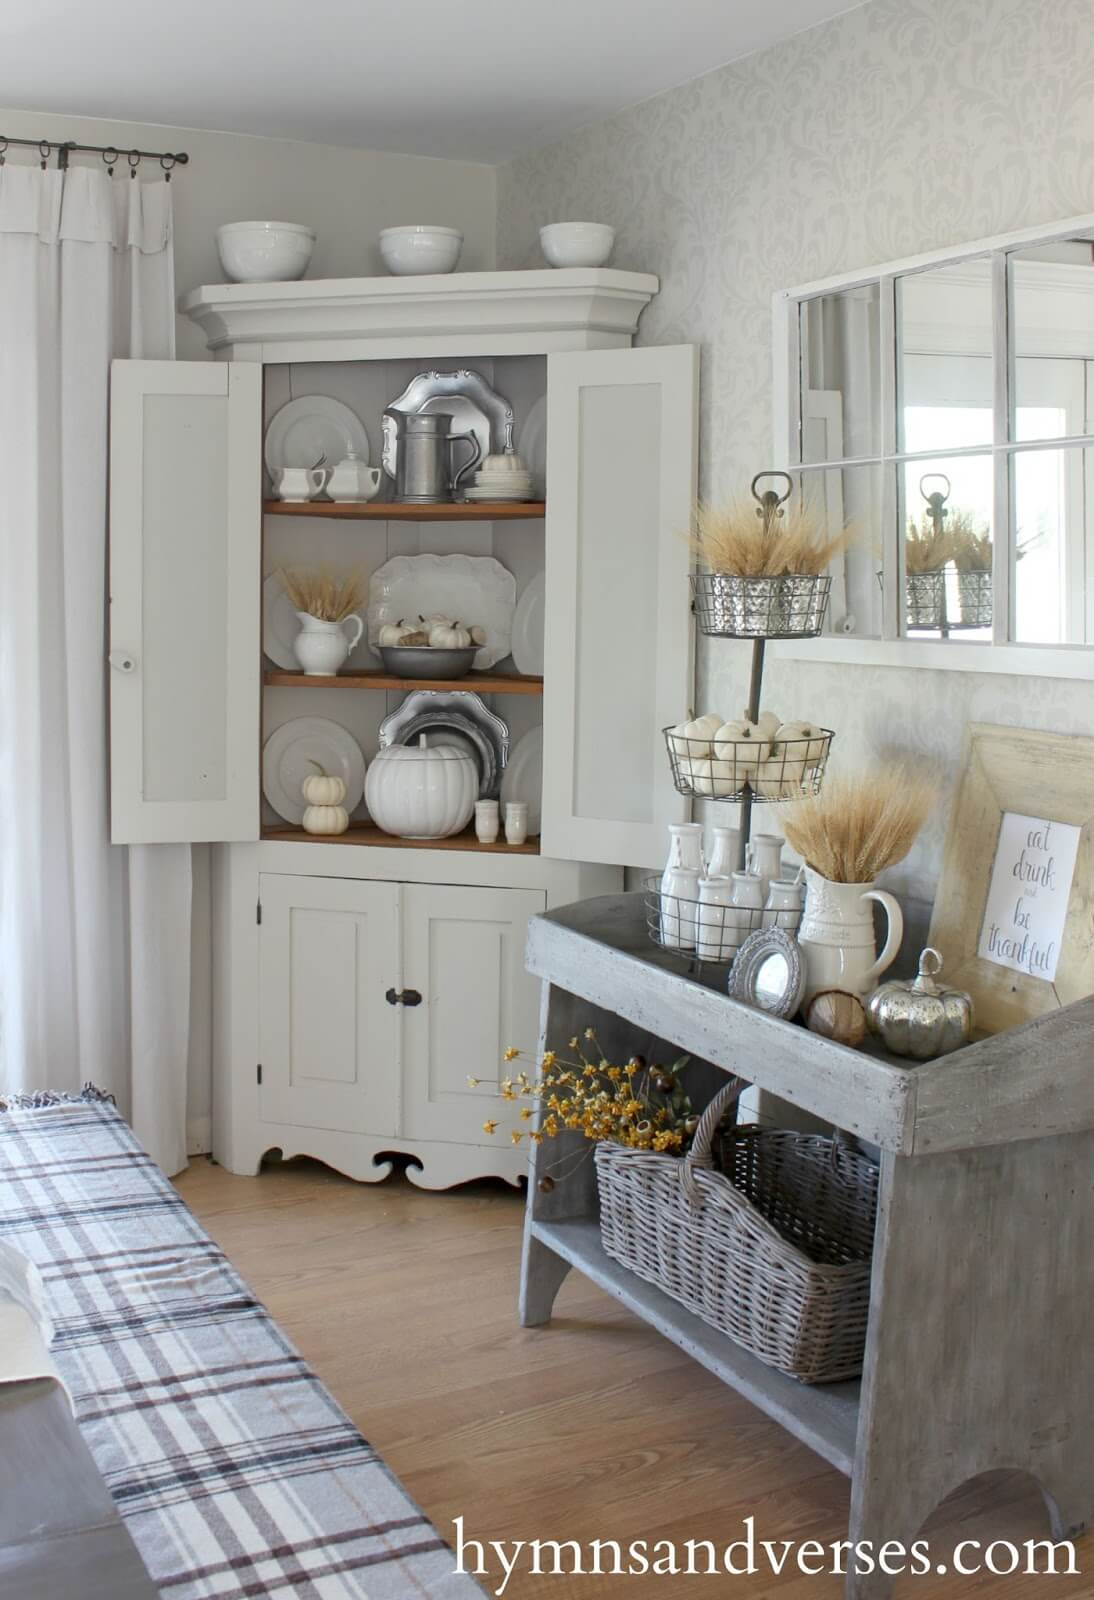 Fullsize Of Old Rustic Home Decor